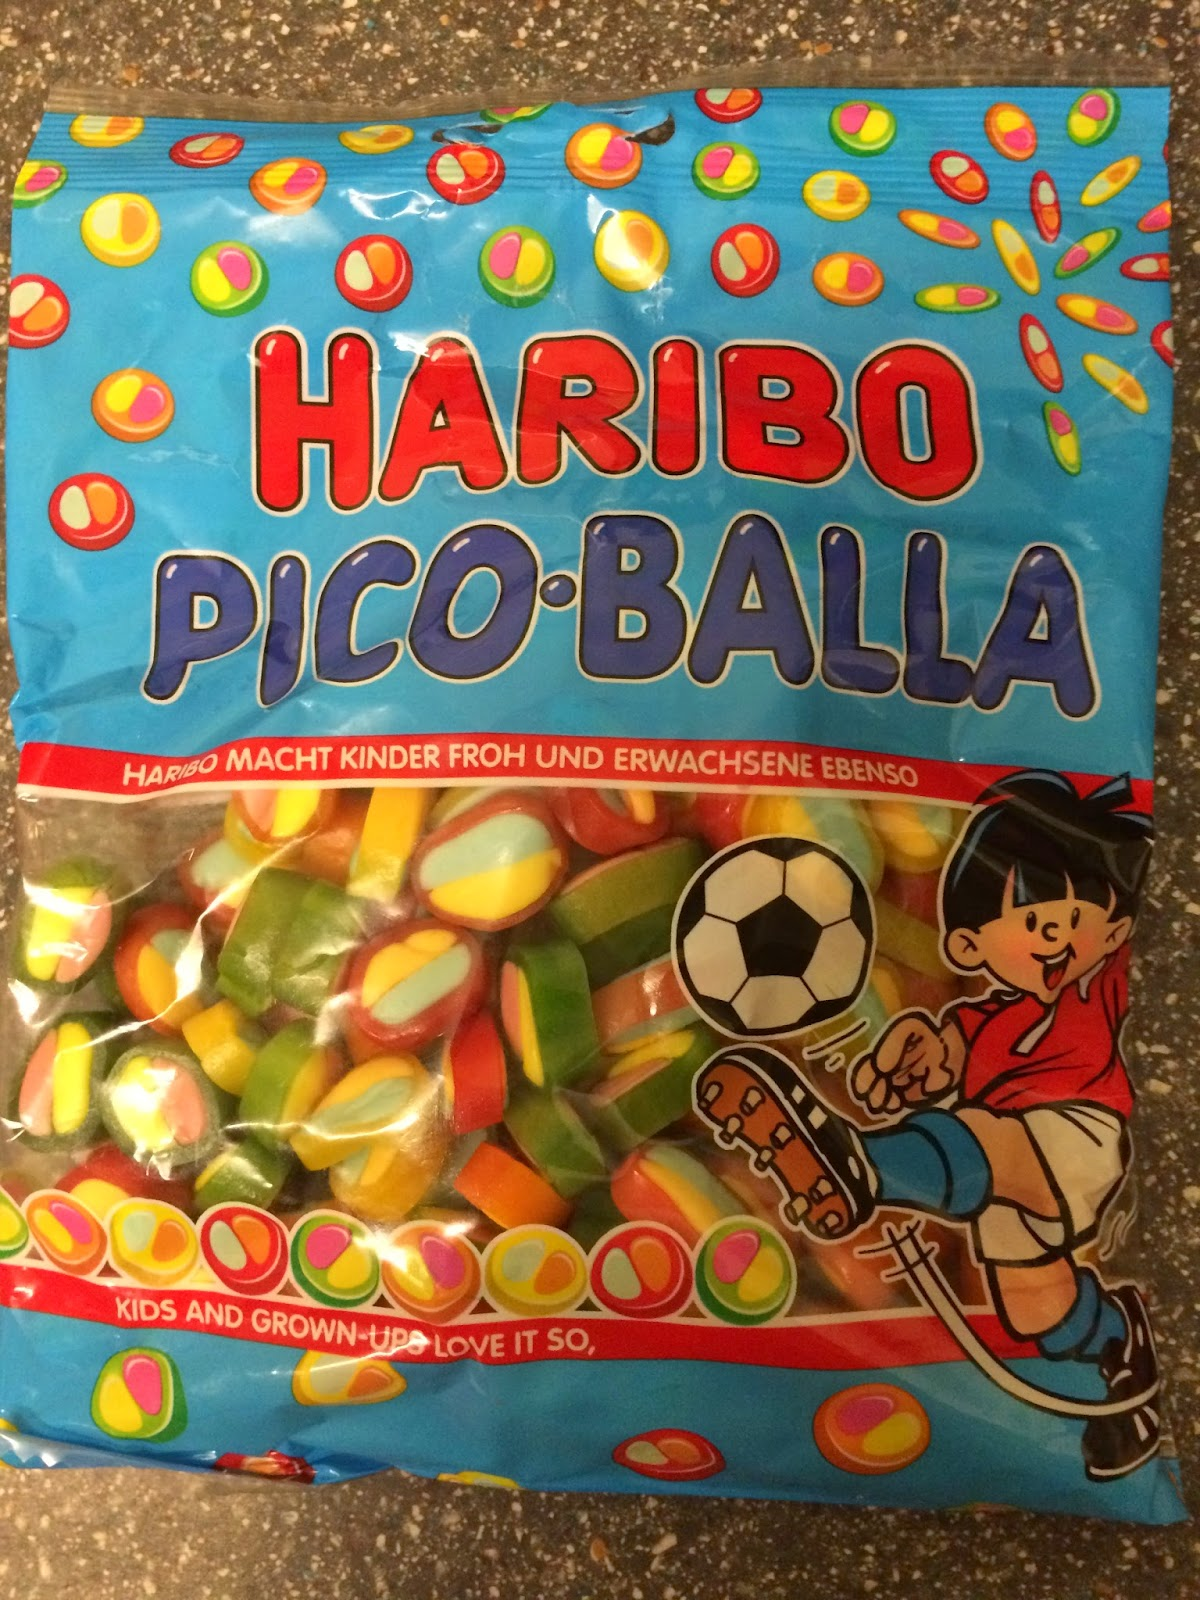 A Review A Day: Today's Review: Haribo Pico-Balla